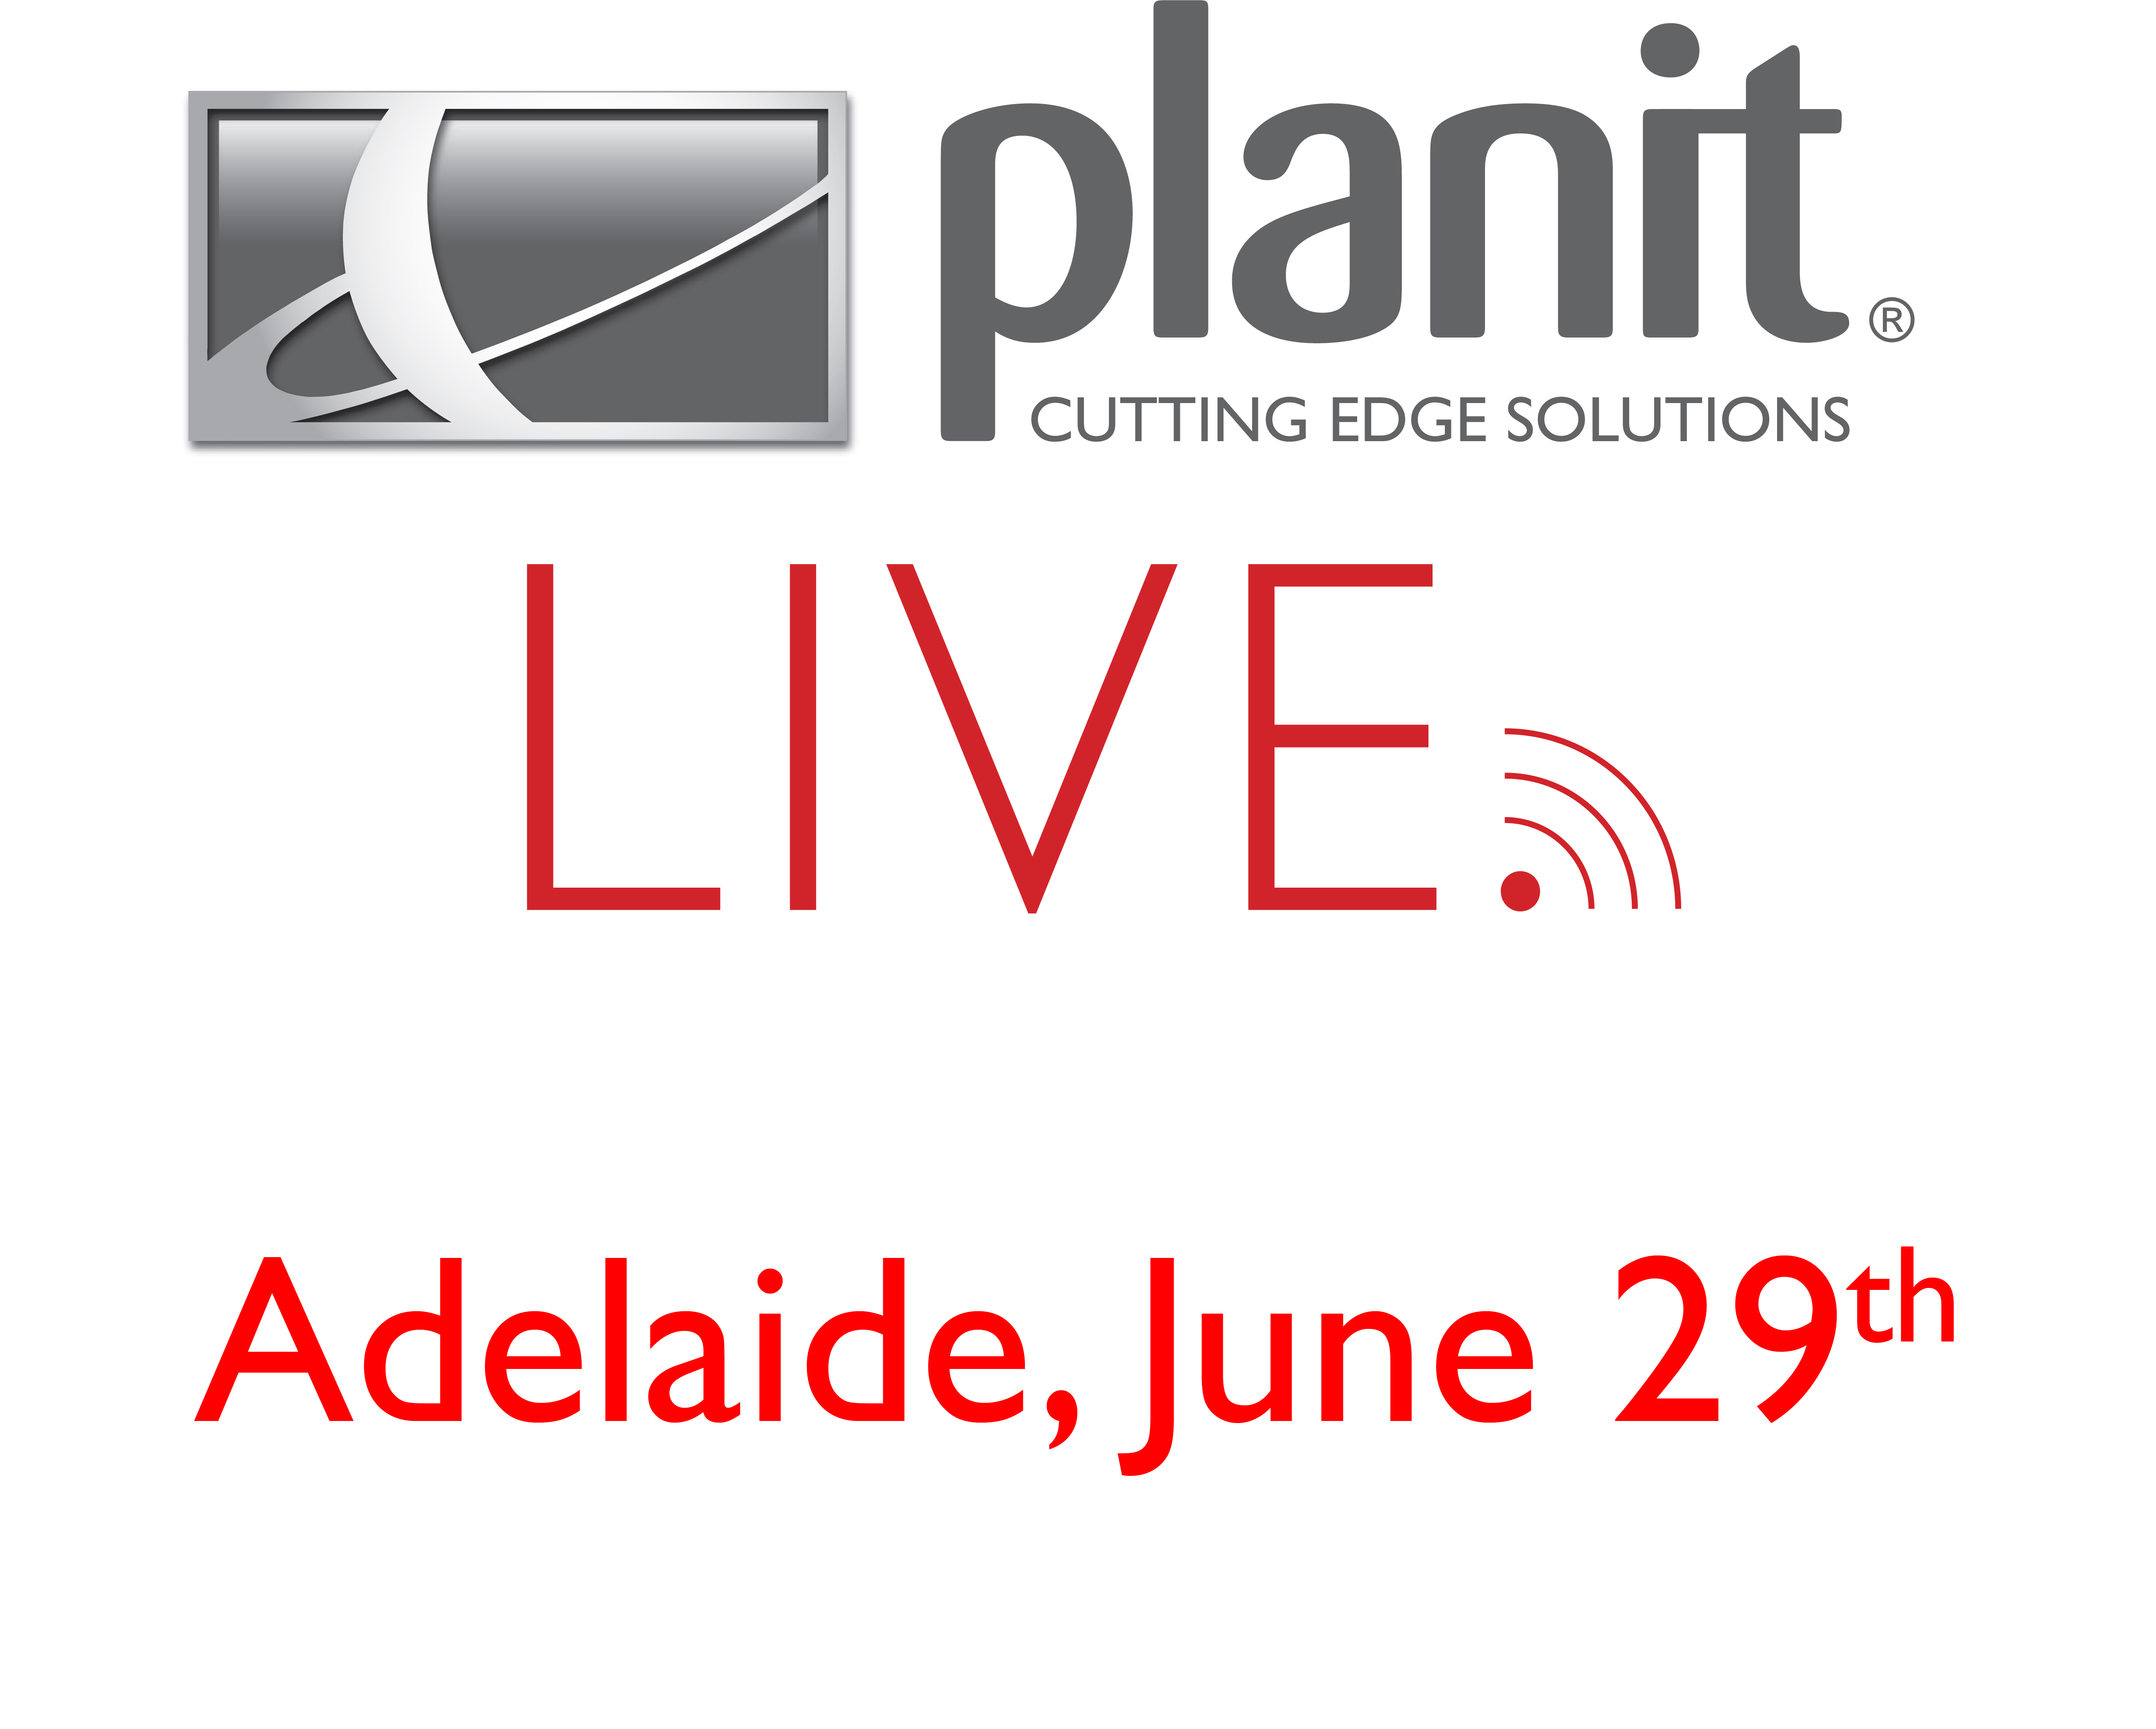 Planit Live 2017 - Adelaide